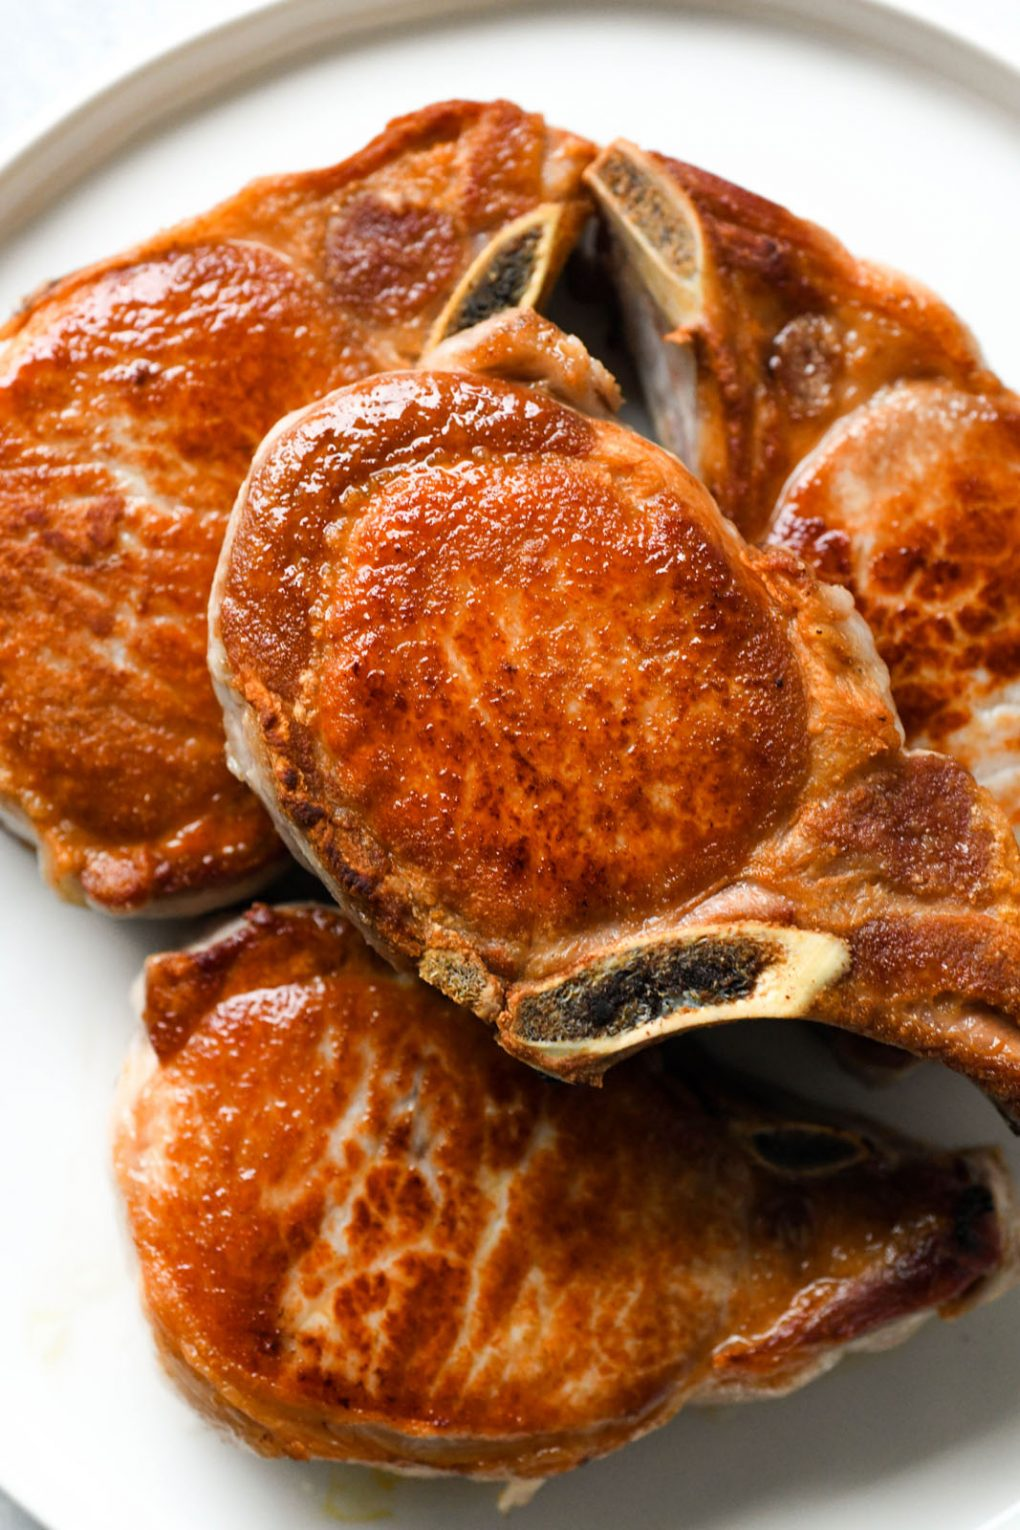 Overhead shot of a plate of pan seared bone in pork chops. Cooked to a perfect golden brown on a light colored background.